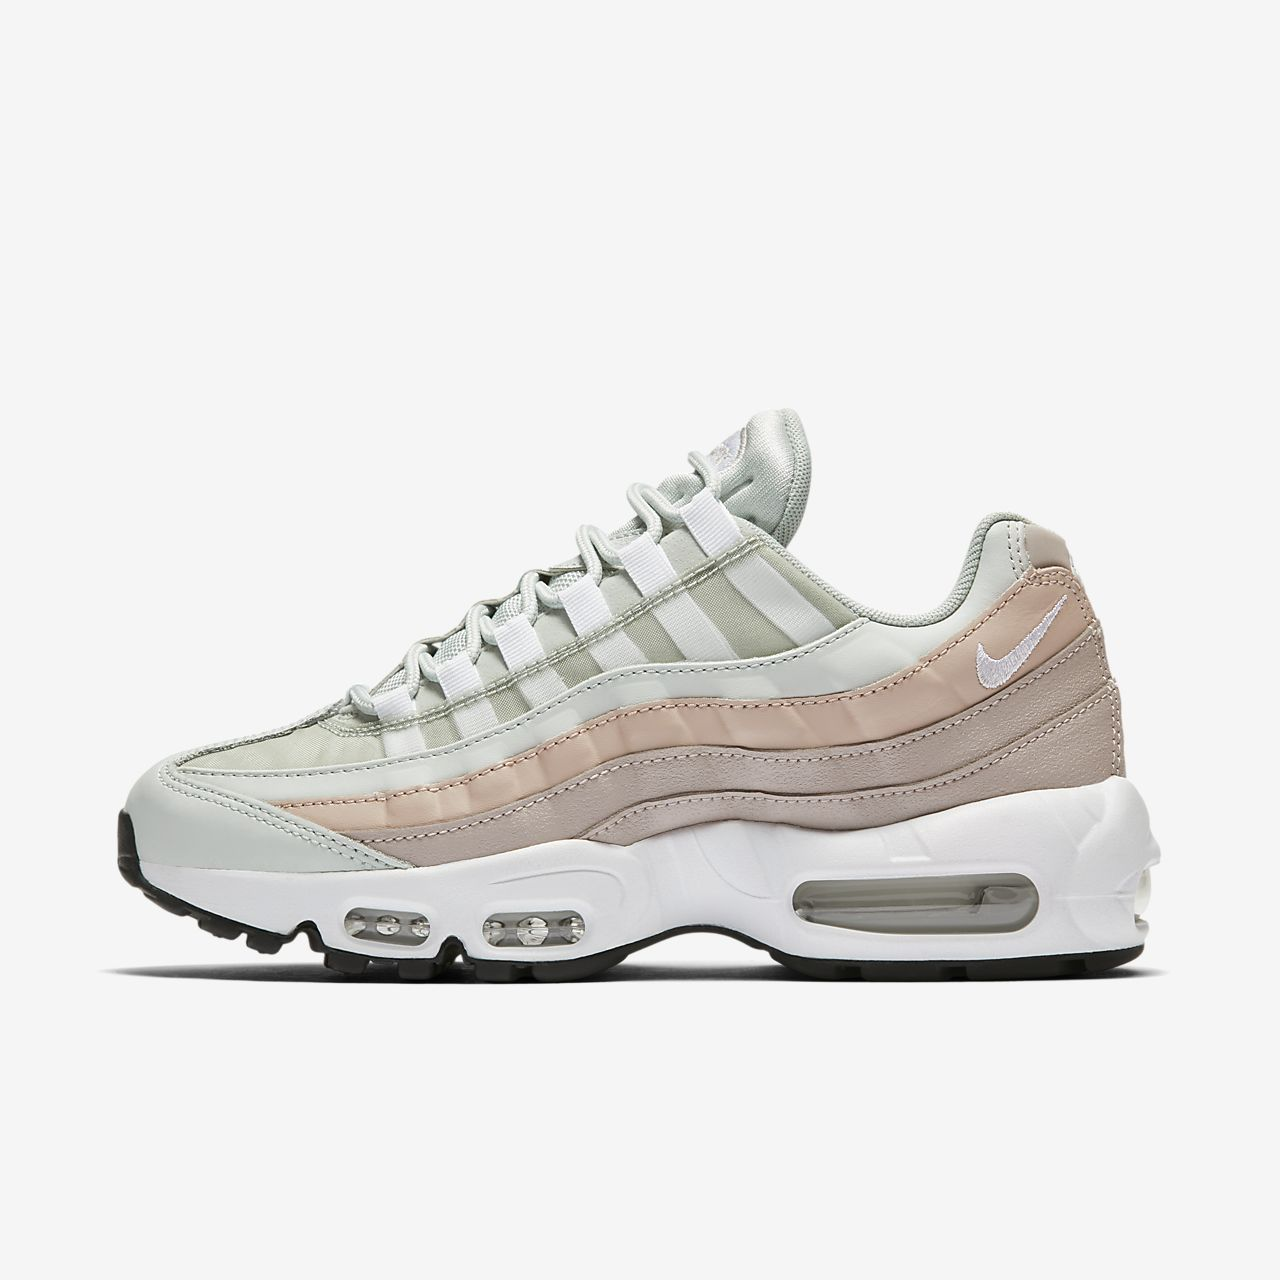 dfae94ff30 ... coupon code for nike air max 95 og womens shoe fde19 f7193